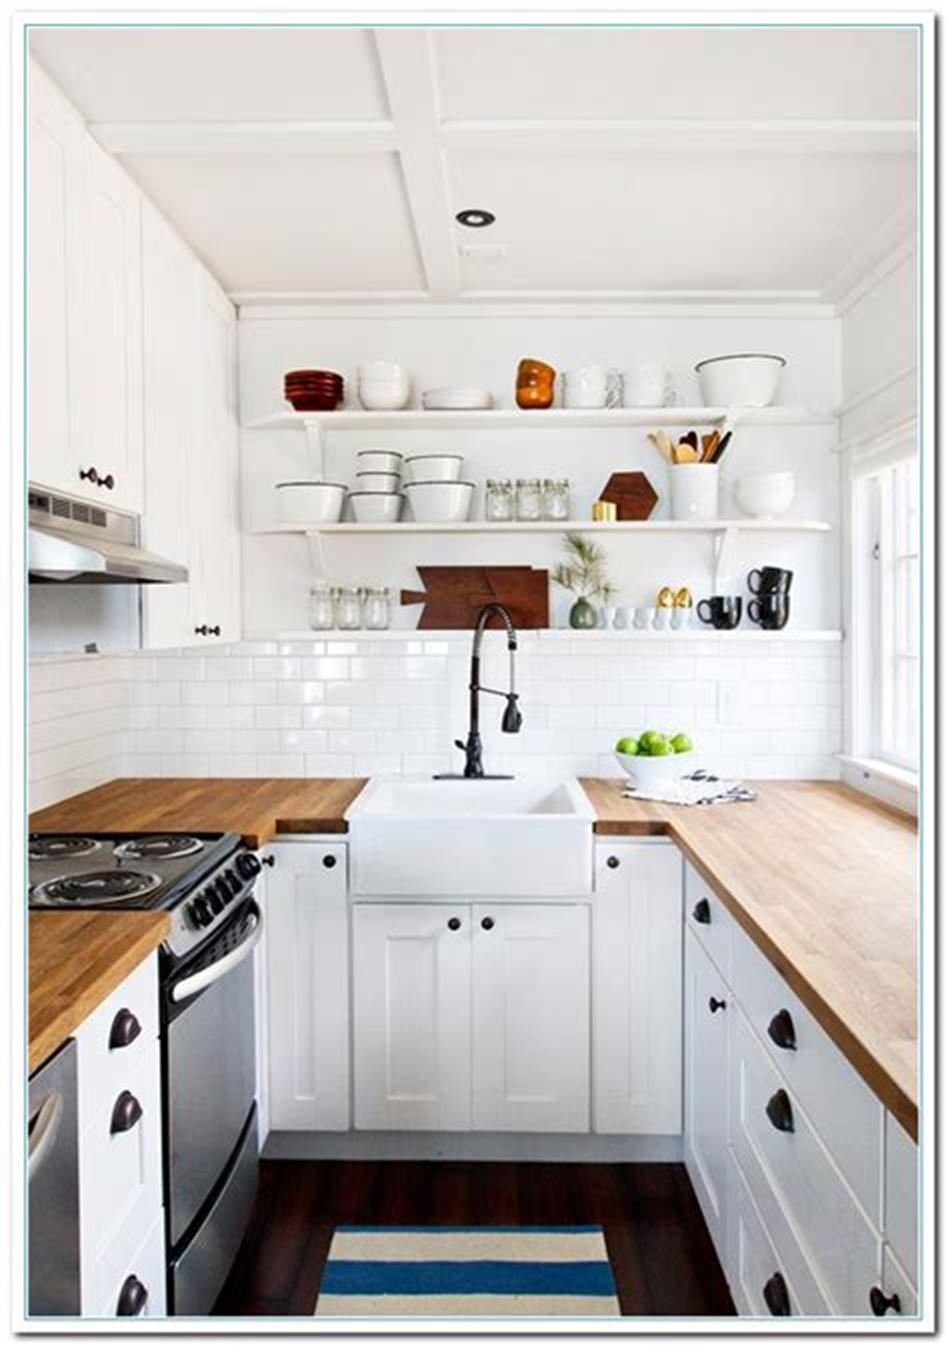 43 Amazing Kitchen Remodeling Ideas for Small Kitchens 2019 59